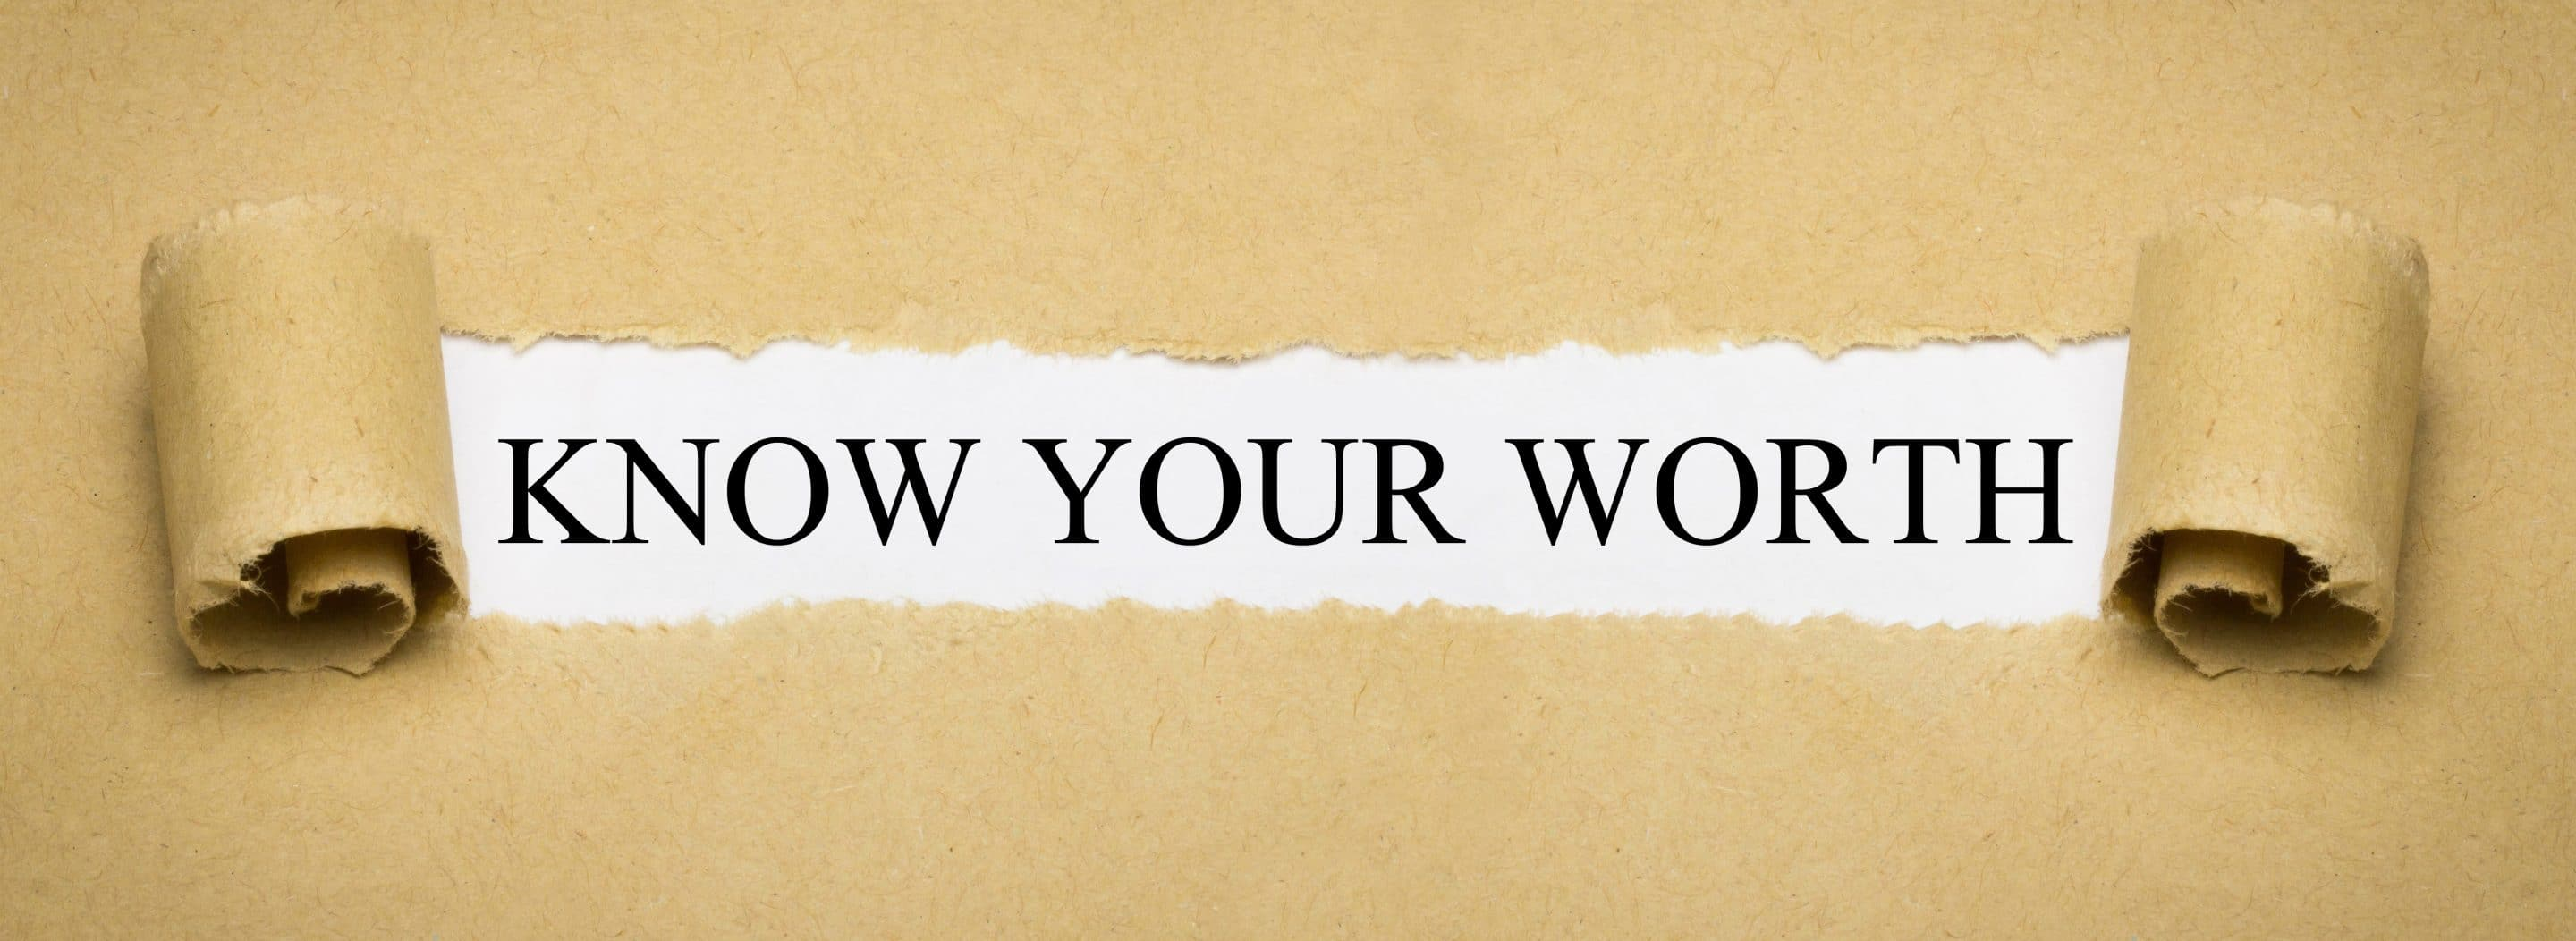 THE VALUE OF WORTH, SELF-WORTH IN LIVING YOUR LEGACY